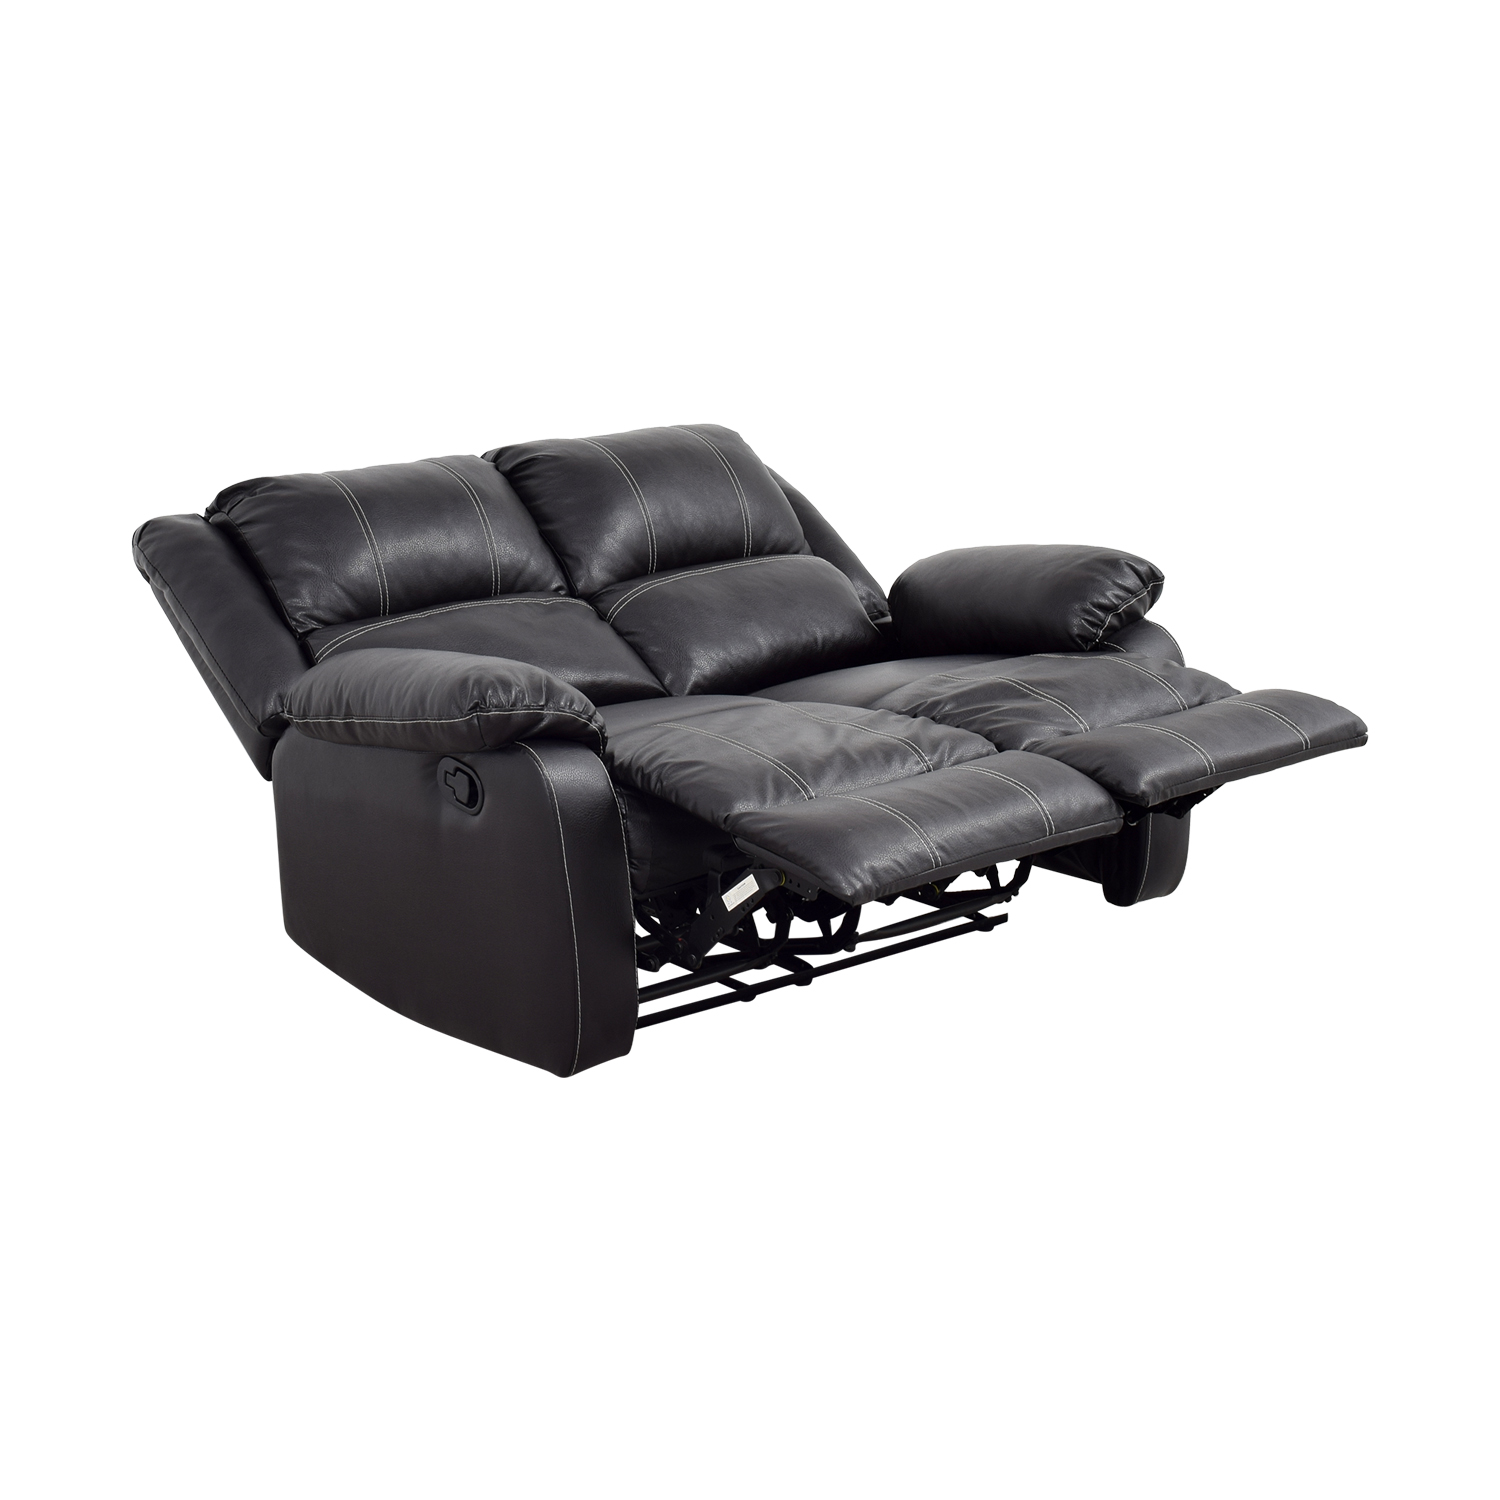 recliner sofa leather black beds melbourne australia 49 off acme reclining loveseat sofas